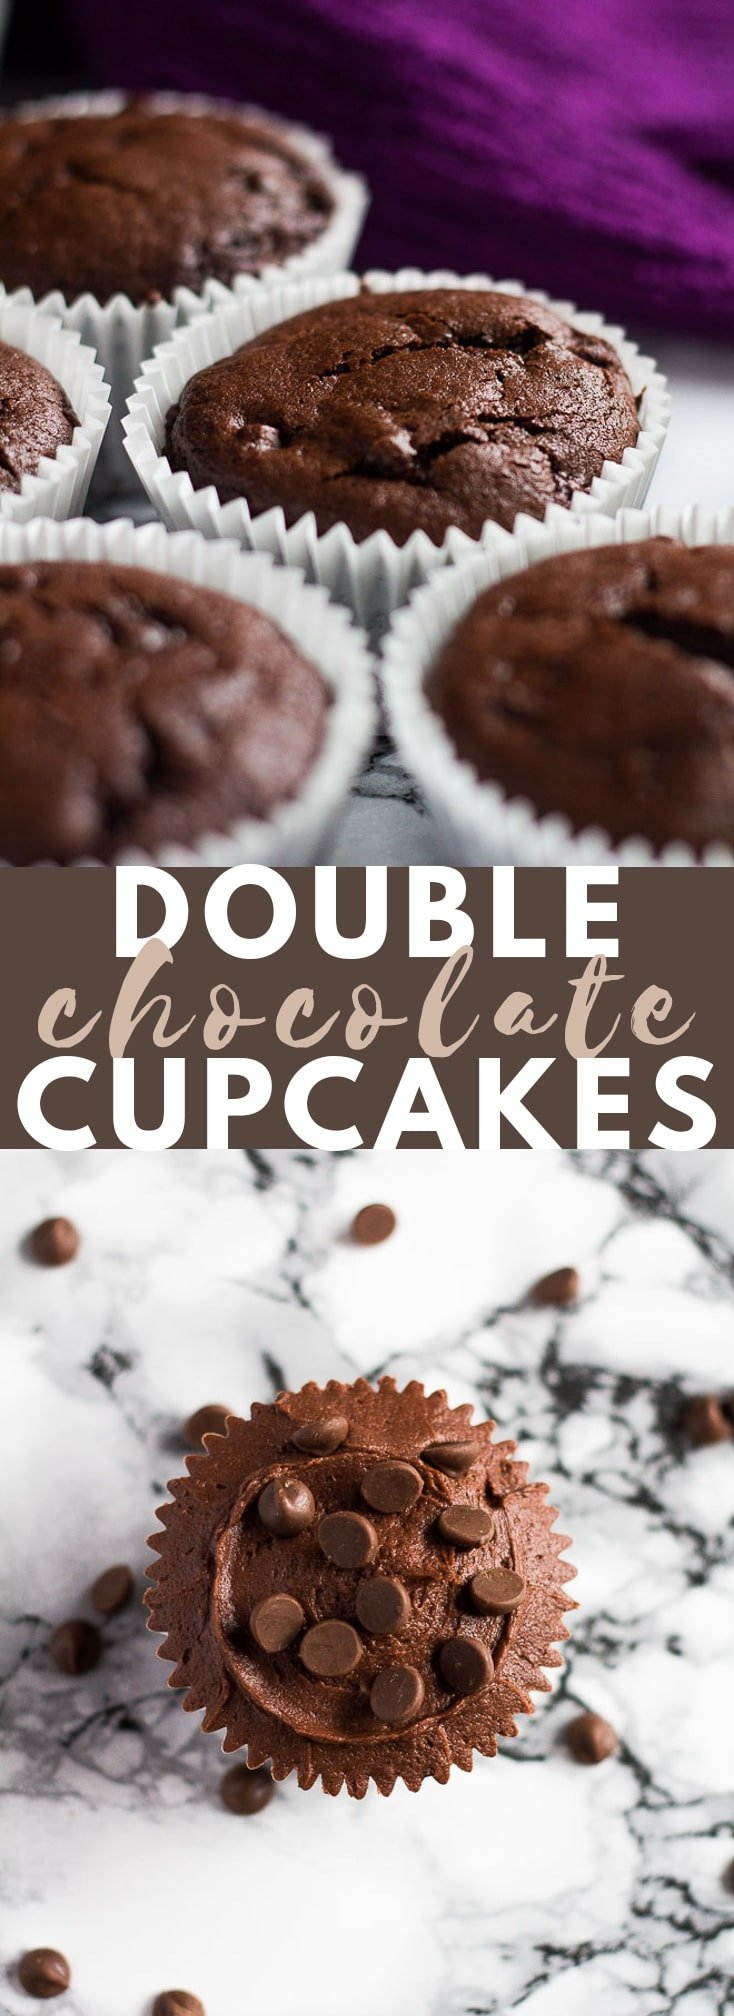 Double Chocolate Cupcakes -Deliciously moist and fluffy chocolate cupcakes stuffed with chocolate chips, and topped with a chocolate buttercream frosting! #chocolatecupcakes #cupcakerecipes #chocolaterecipes